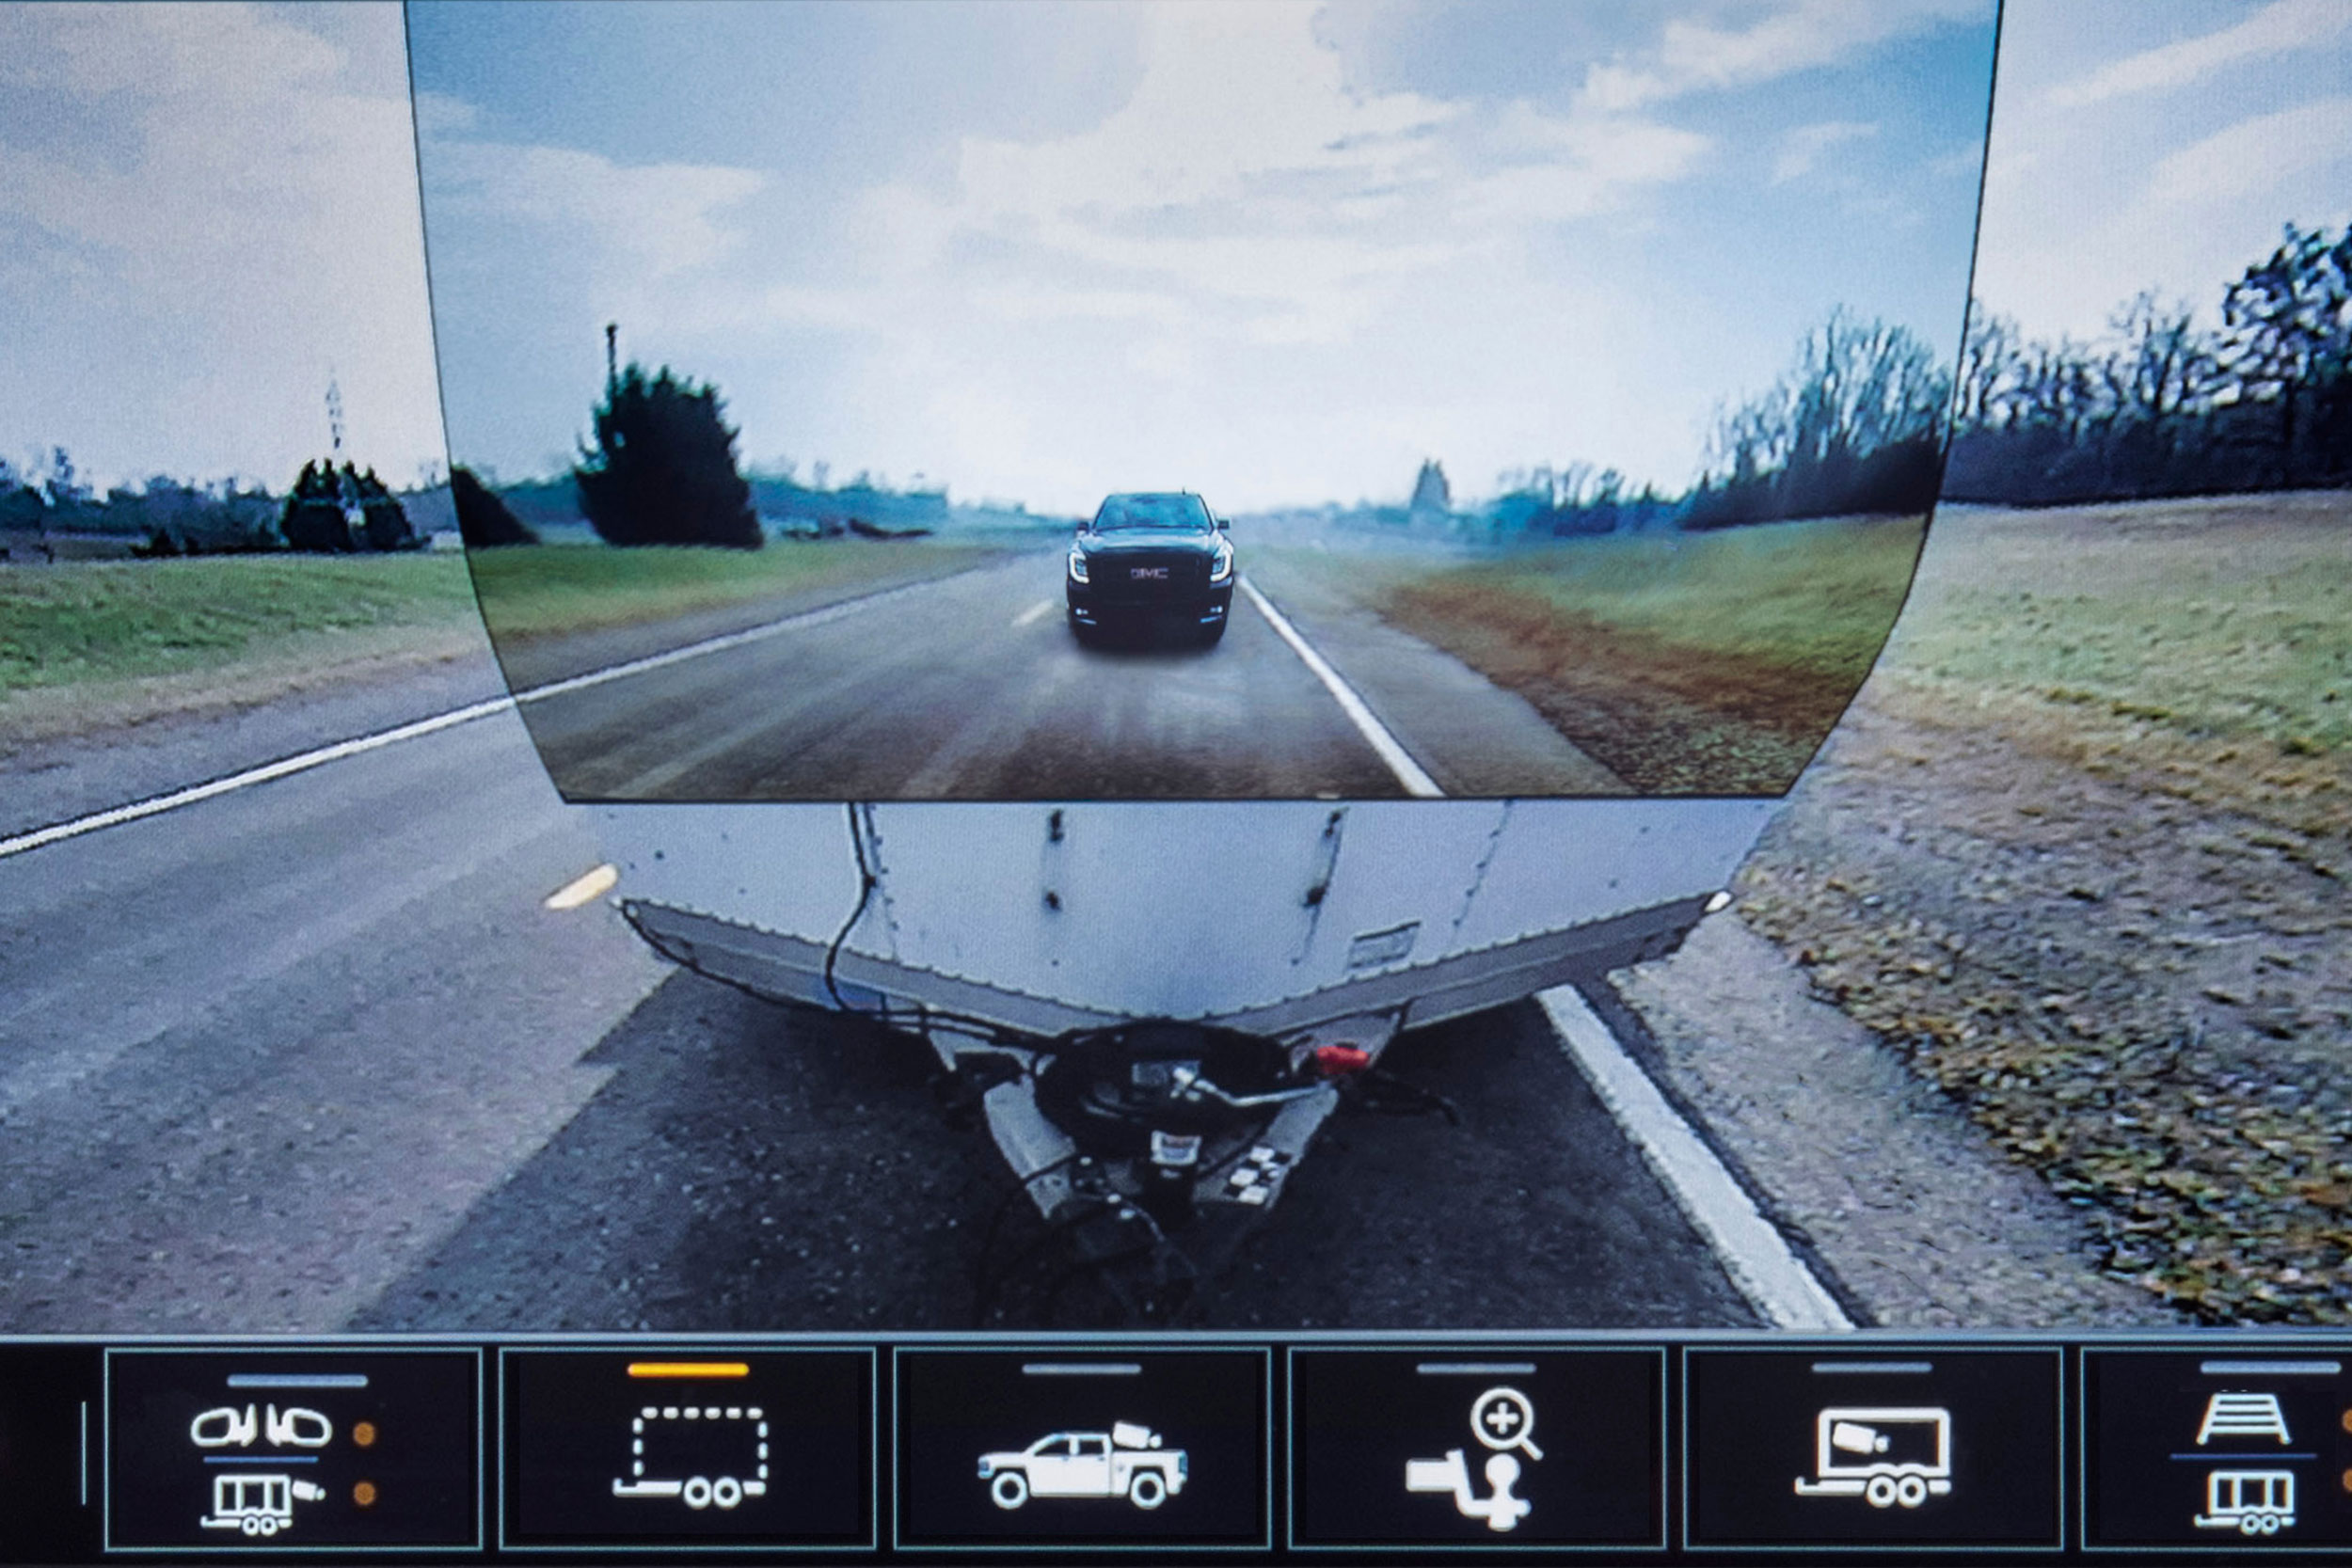 Best Wireless Backup Camera 2020.Invisible Tow Behind Gmc Launches Transparent Trailer View